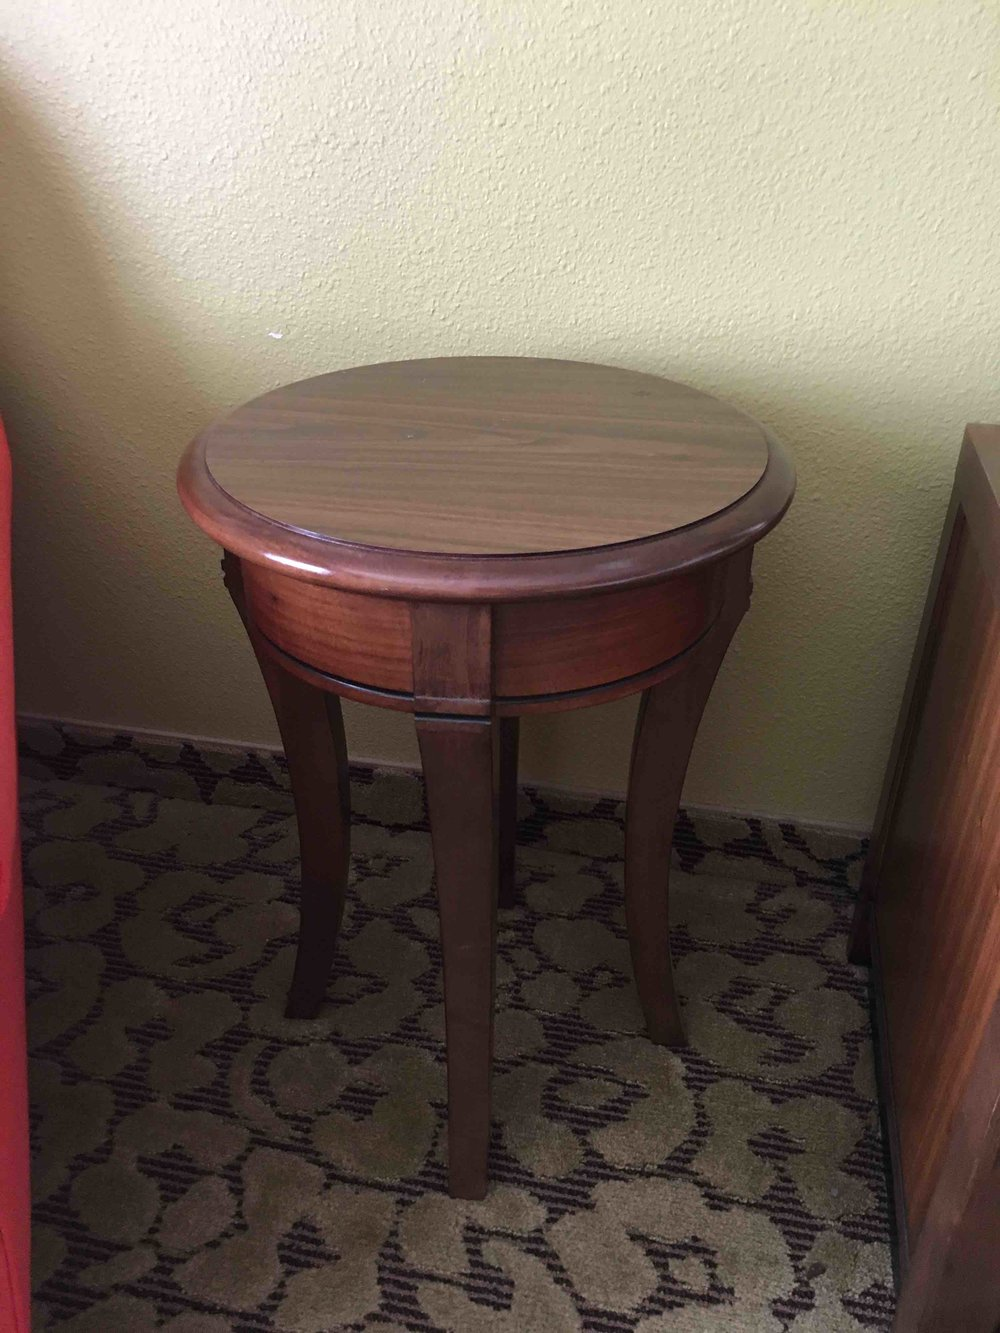 Round Side Table $39